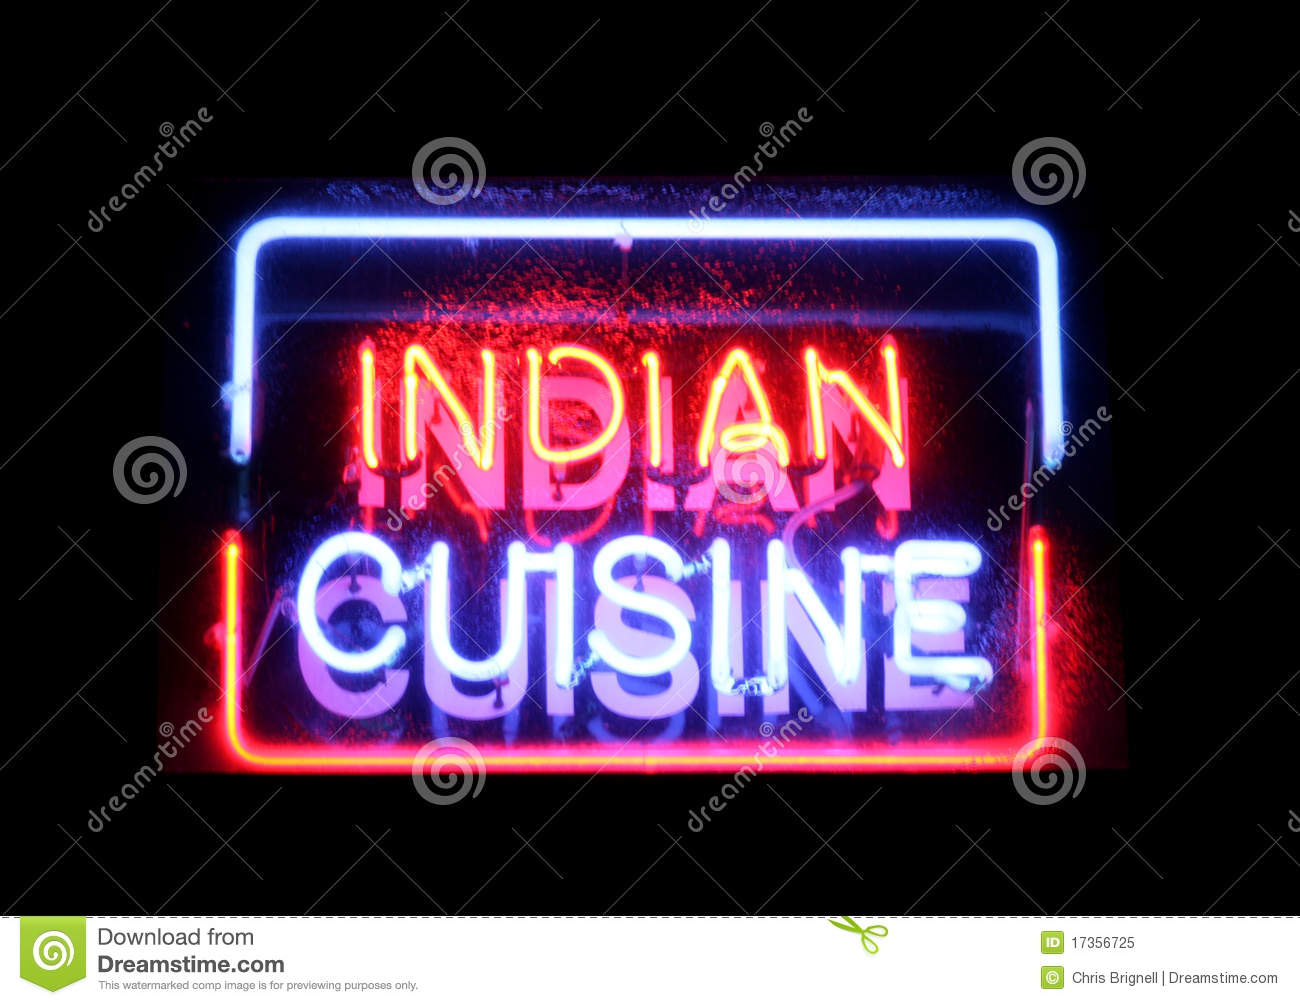 indian cuisine neon sign stock image image of black 17356725. Black Bedroom Furniture Sets. Home Design Ideas